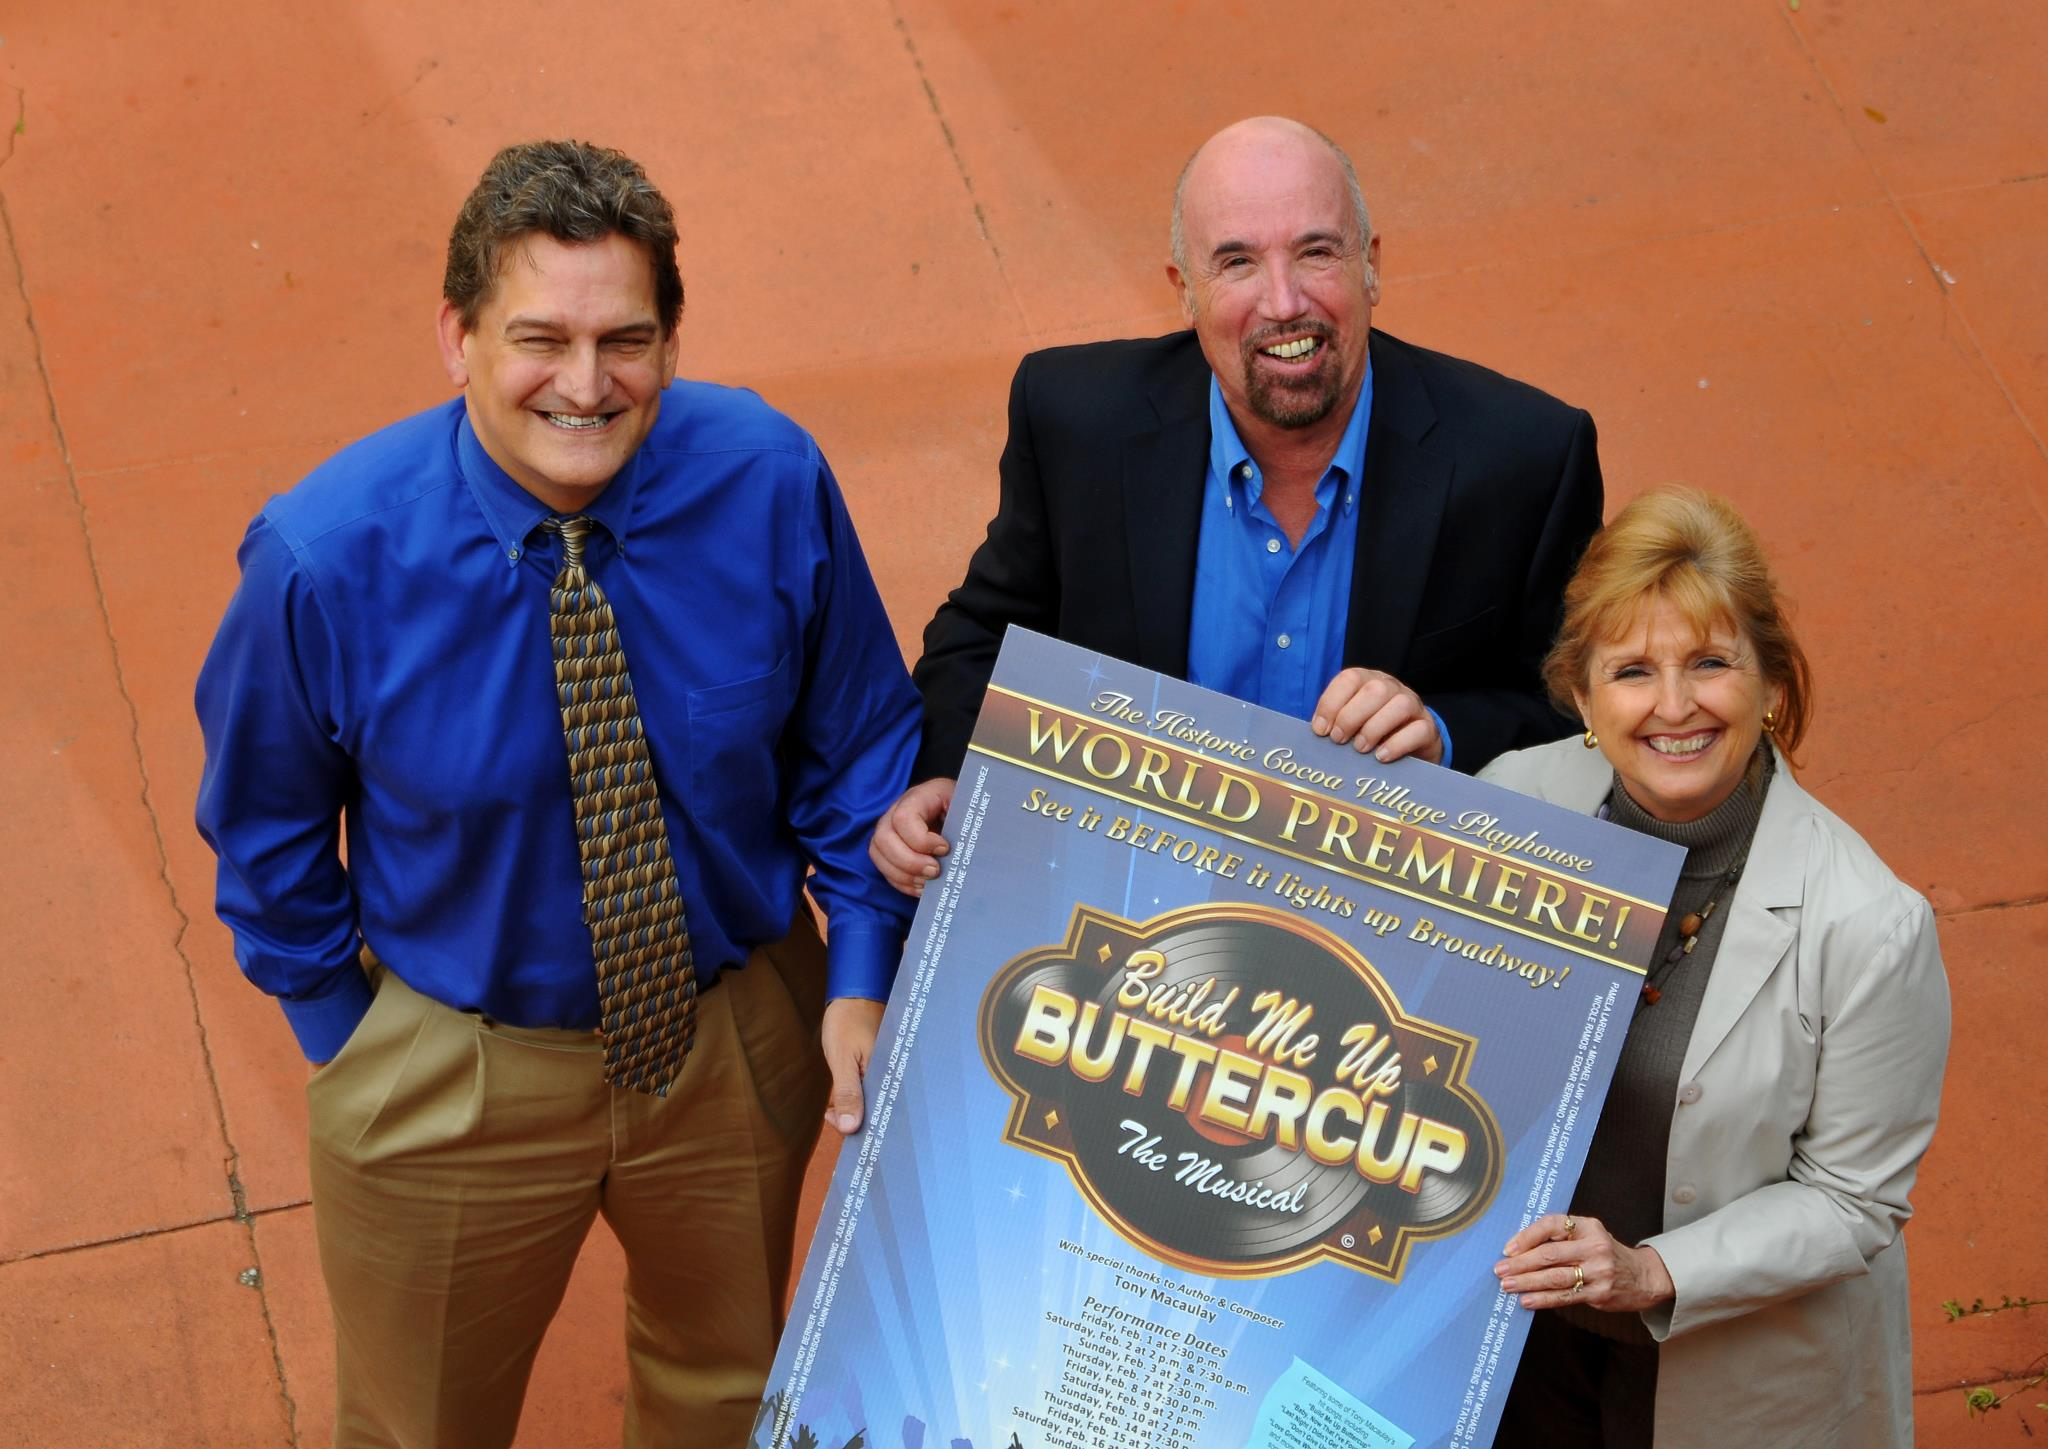 Build Me Up, Buttercup–The Musical (World Premiere)